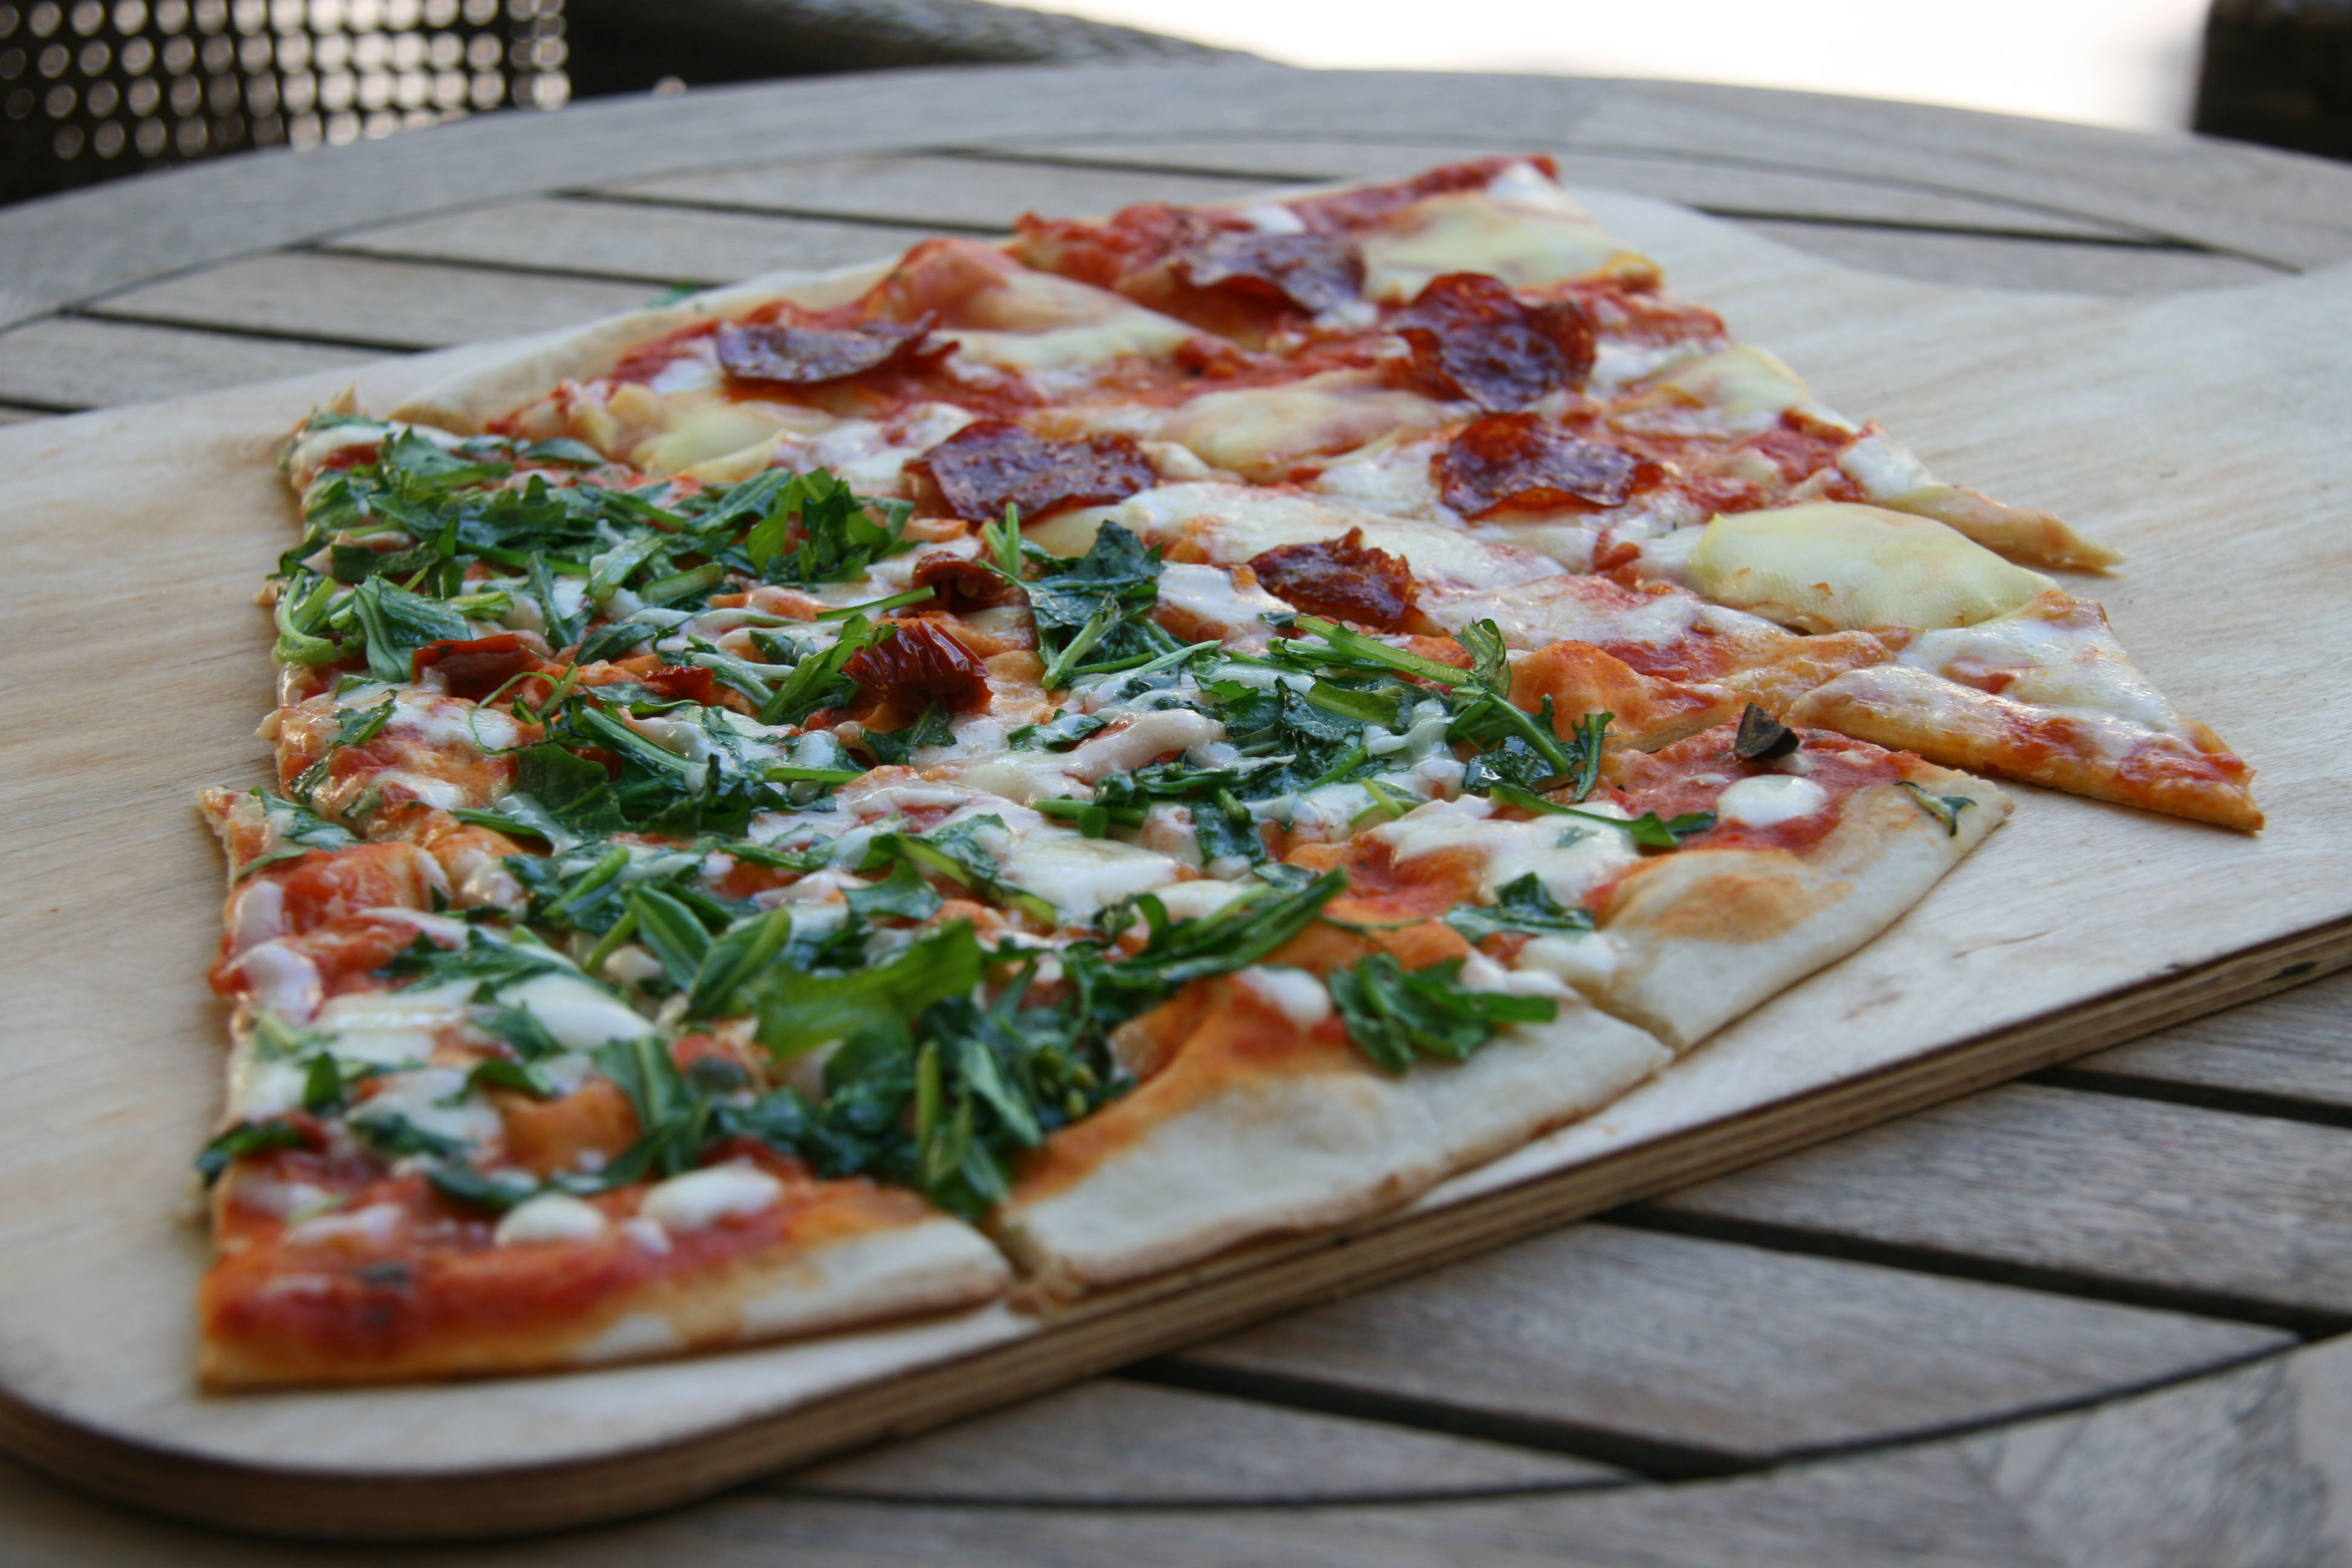 Slices of Spicy Salami and Ruccola (Rocket) pizza at Caramello in Prenzlauer Berg, Berlin